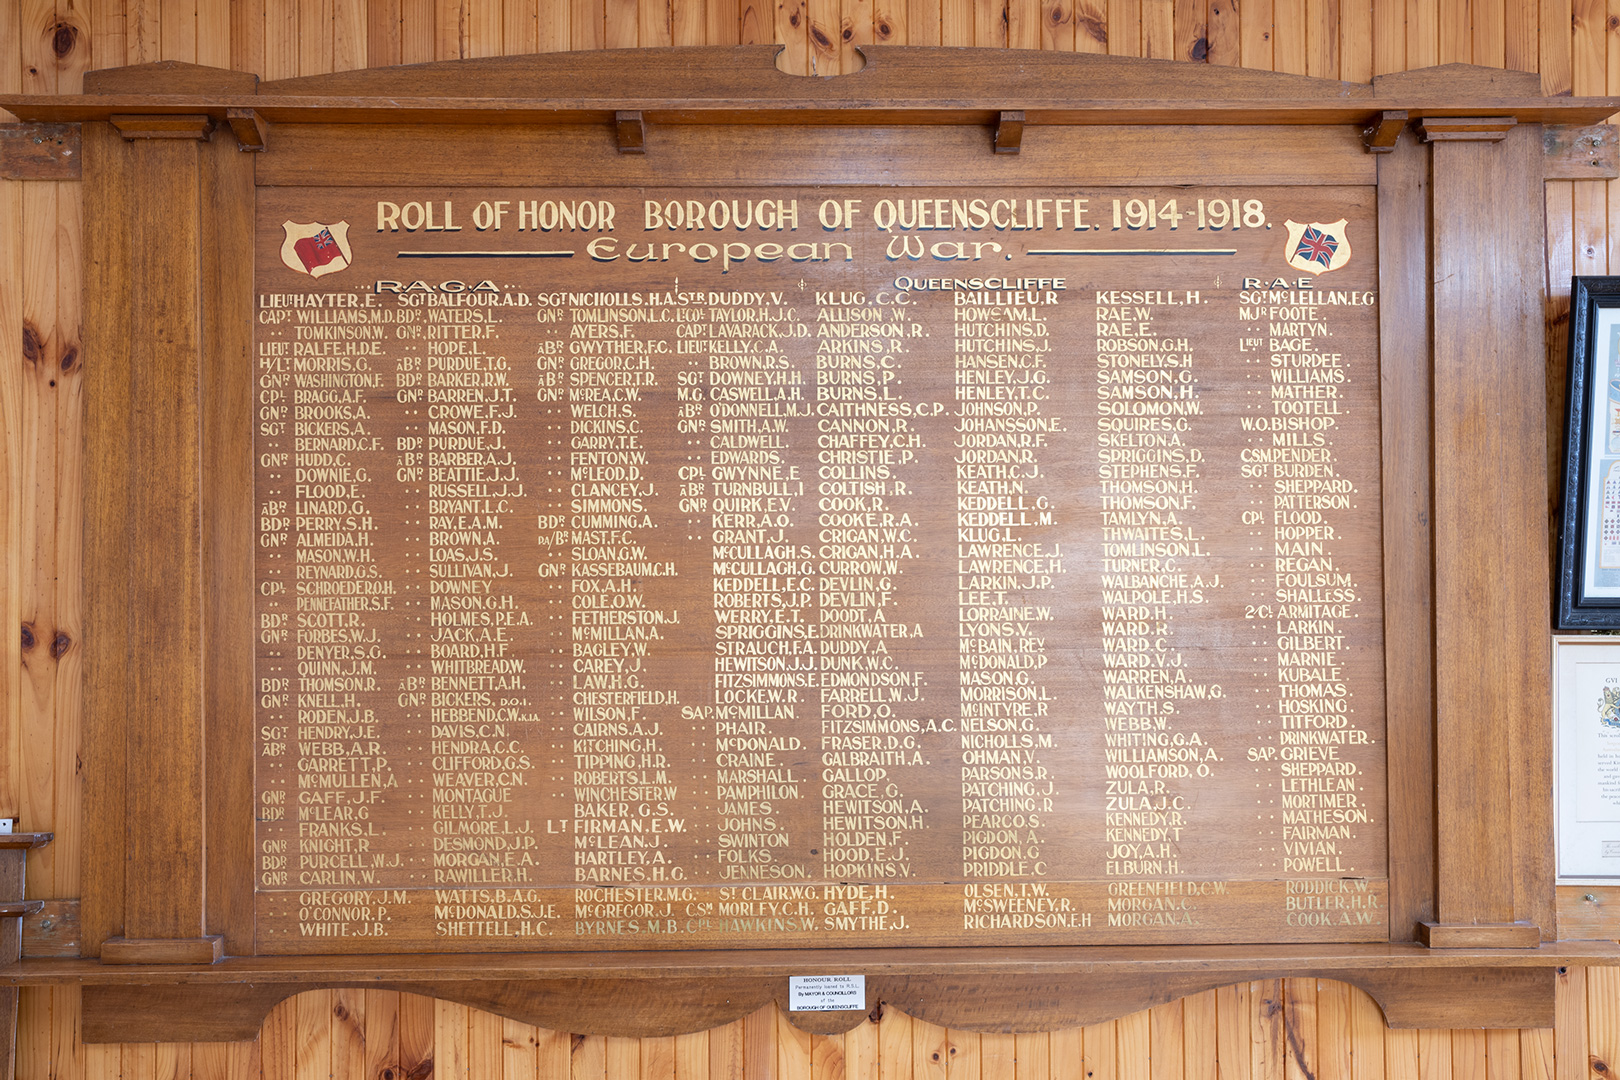 Borough of Queenscliffe Roll of Honor